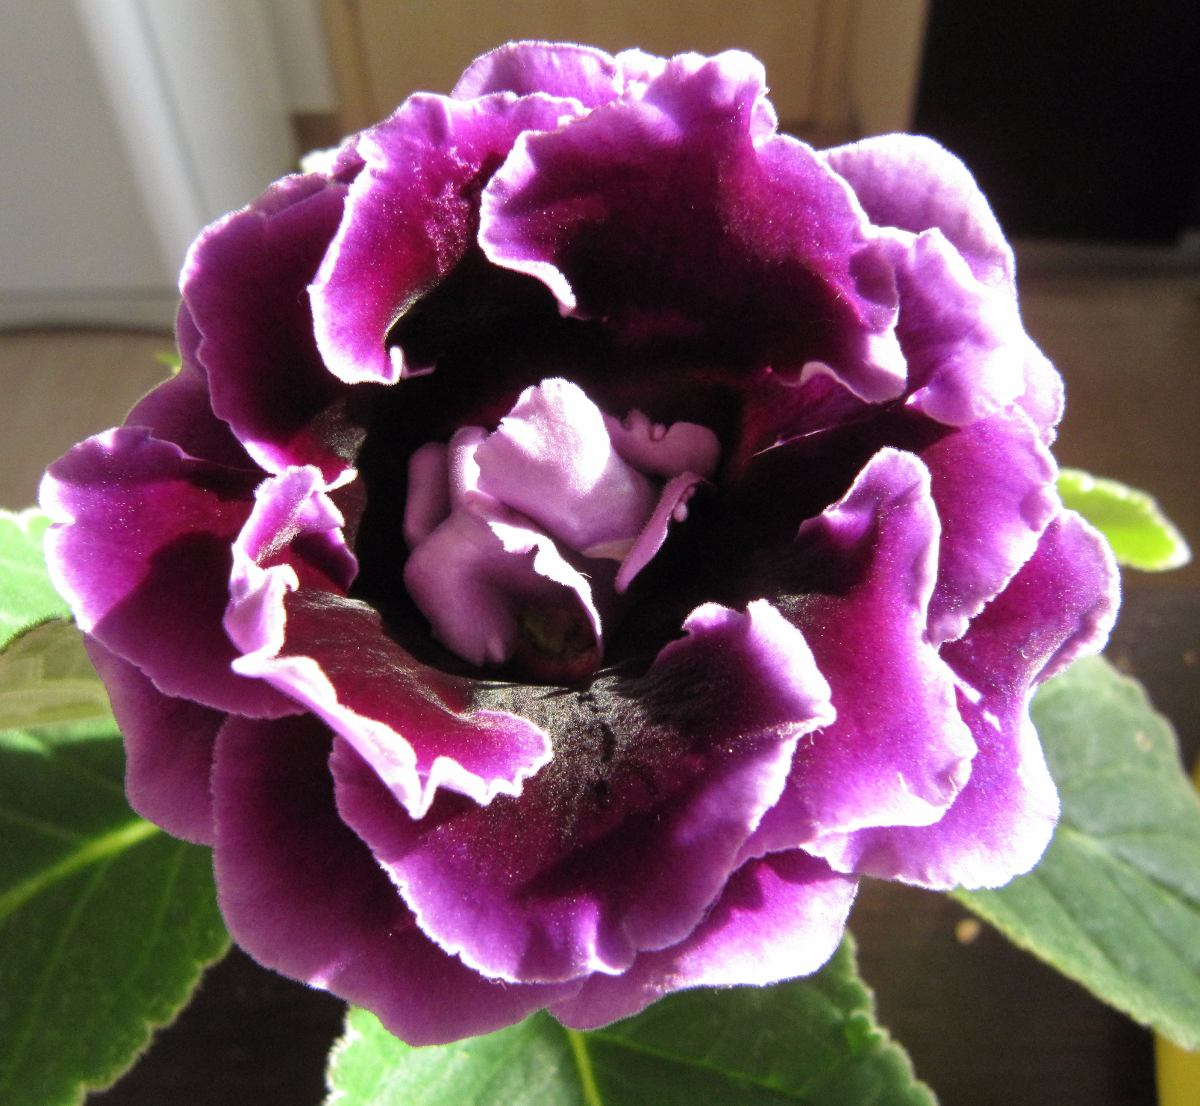 Plantas naturales gloxinia gloxinias planta ornamental for Planta ornamental garbancillo